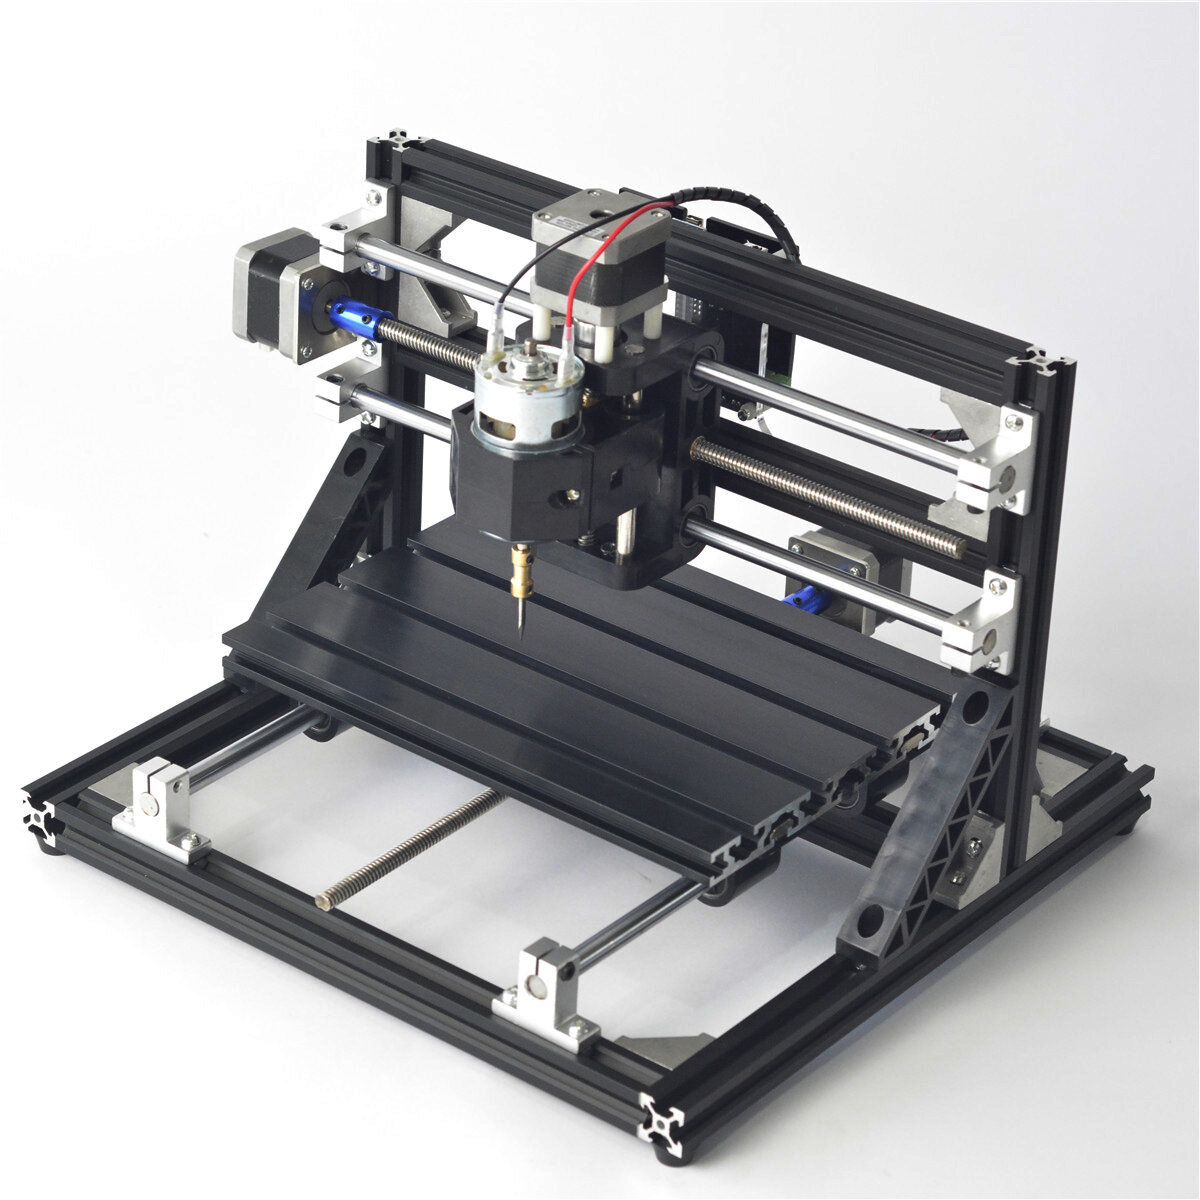 Best Hobby Cnc Router For Aluminum